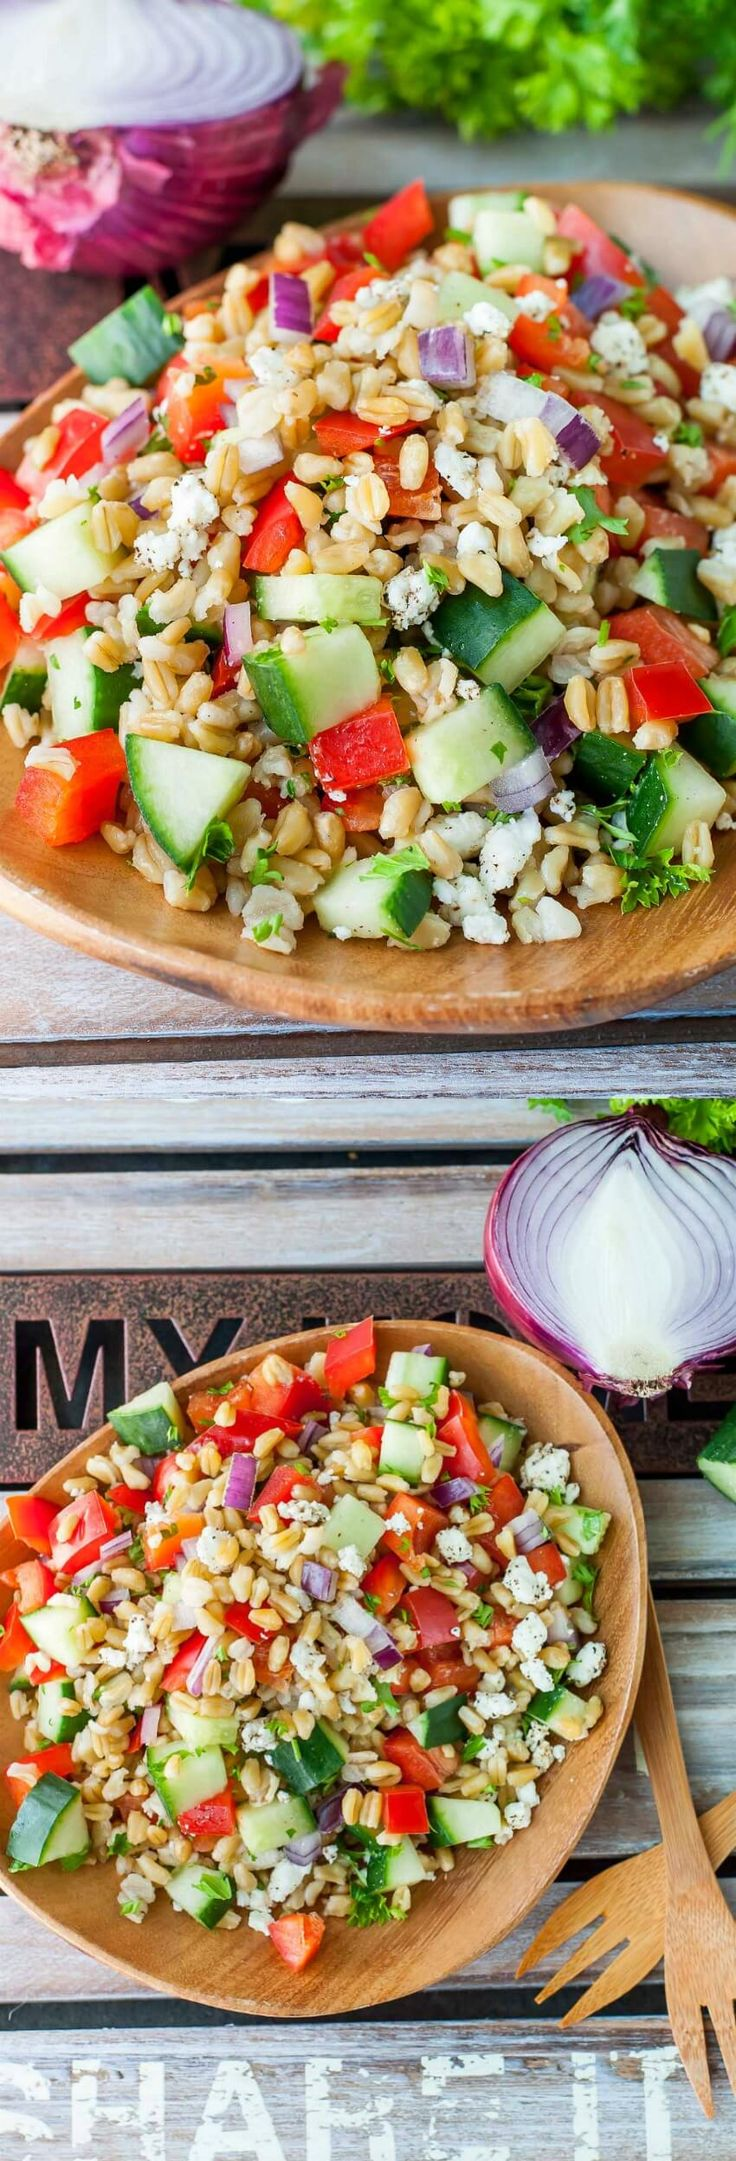 Give a tasty new grain a try with this Healthy Greek Freekeh Salad recipe! This uber easy salad is a total breeze to make and is ready to rock your side dish game with some serious whole grain power.